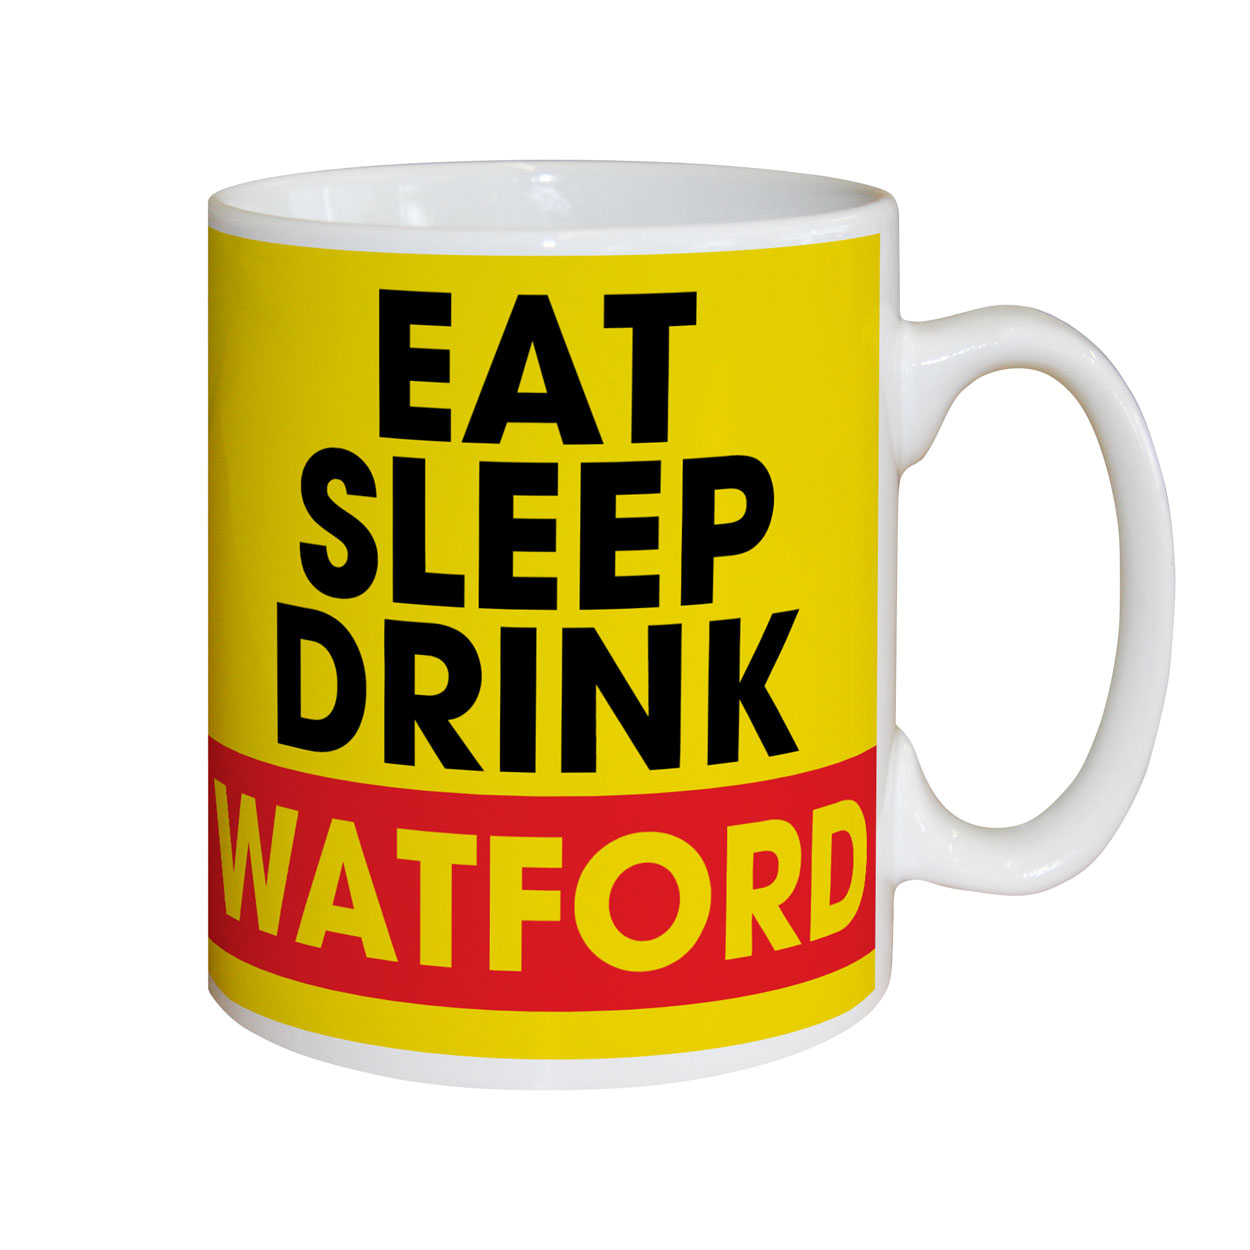 Watford FC Eat Sleep Drink Mug